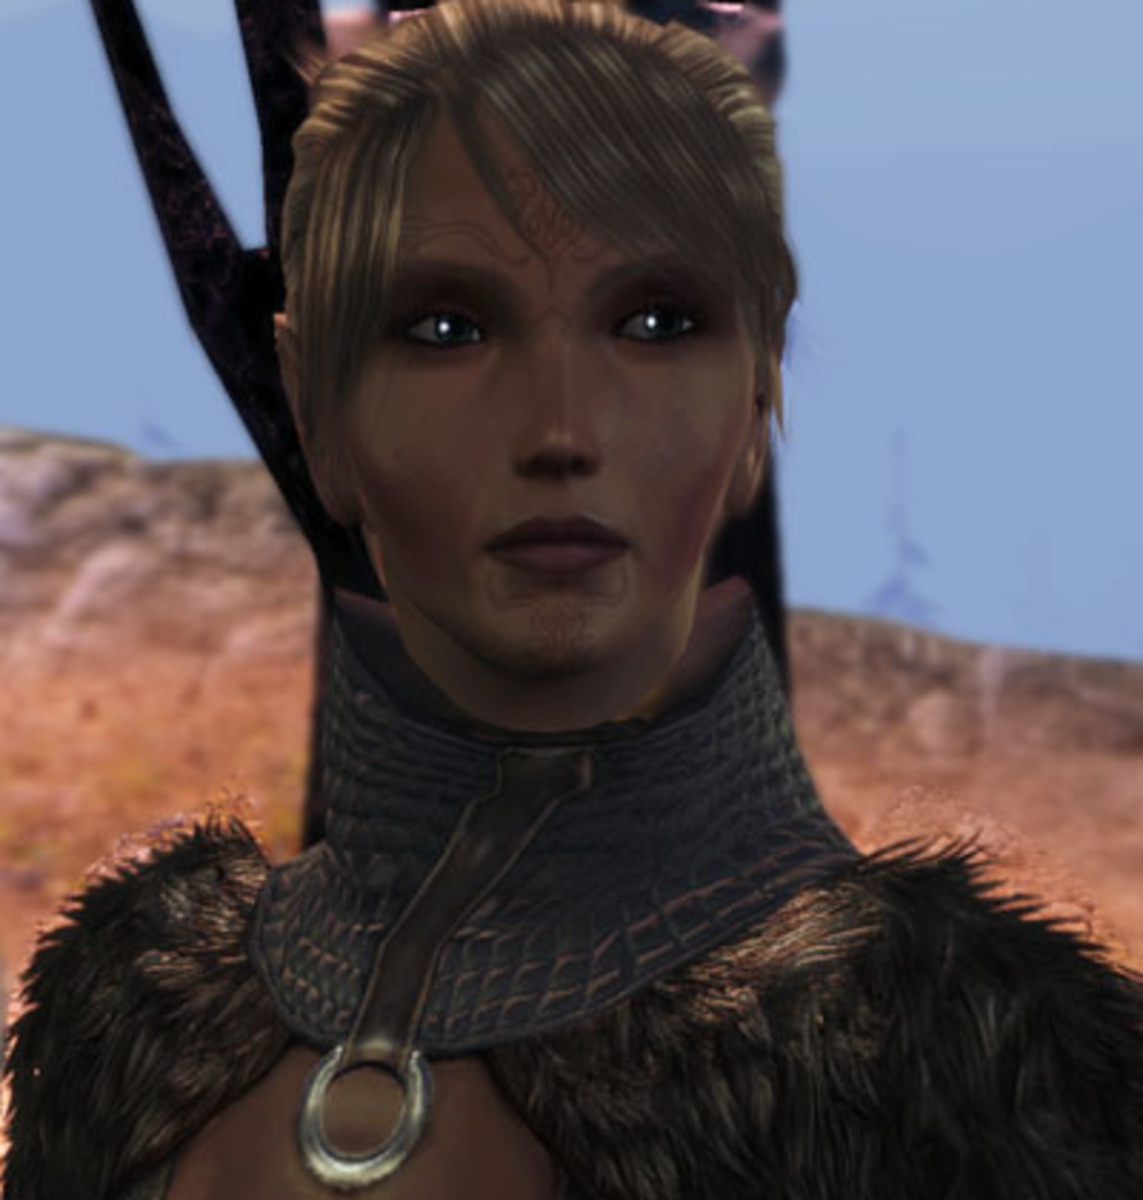 Velanna from Dragon Age Awakening